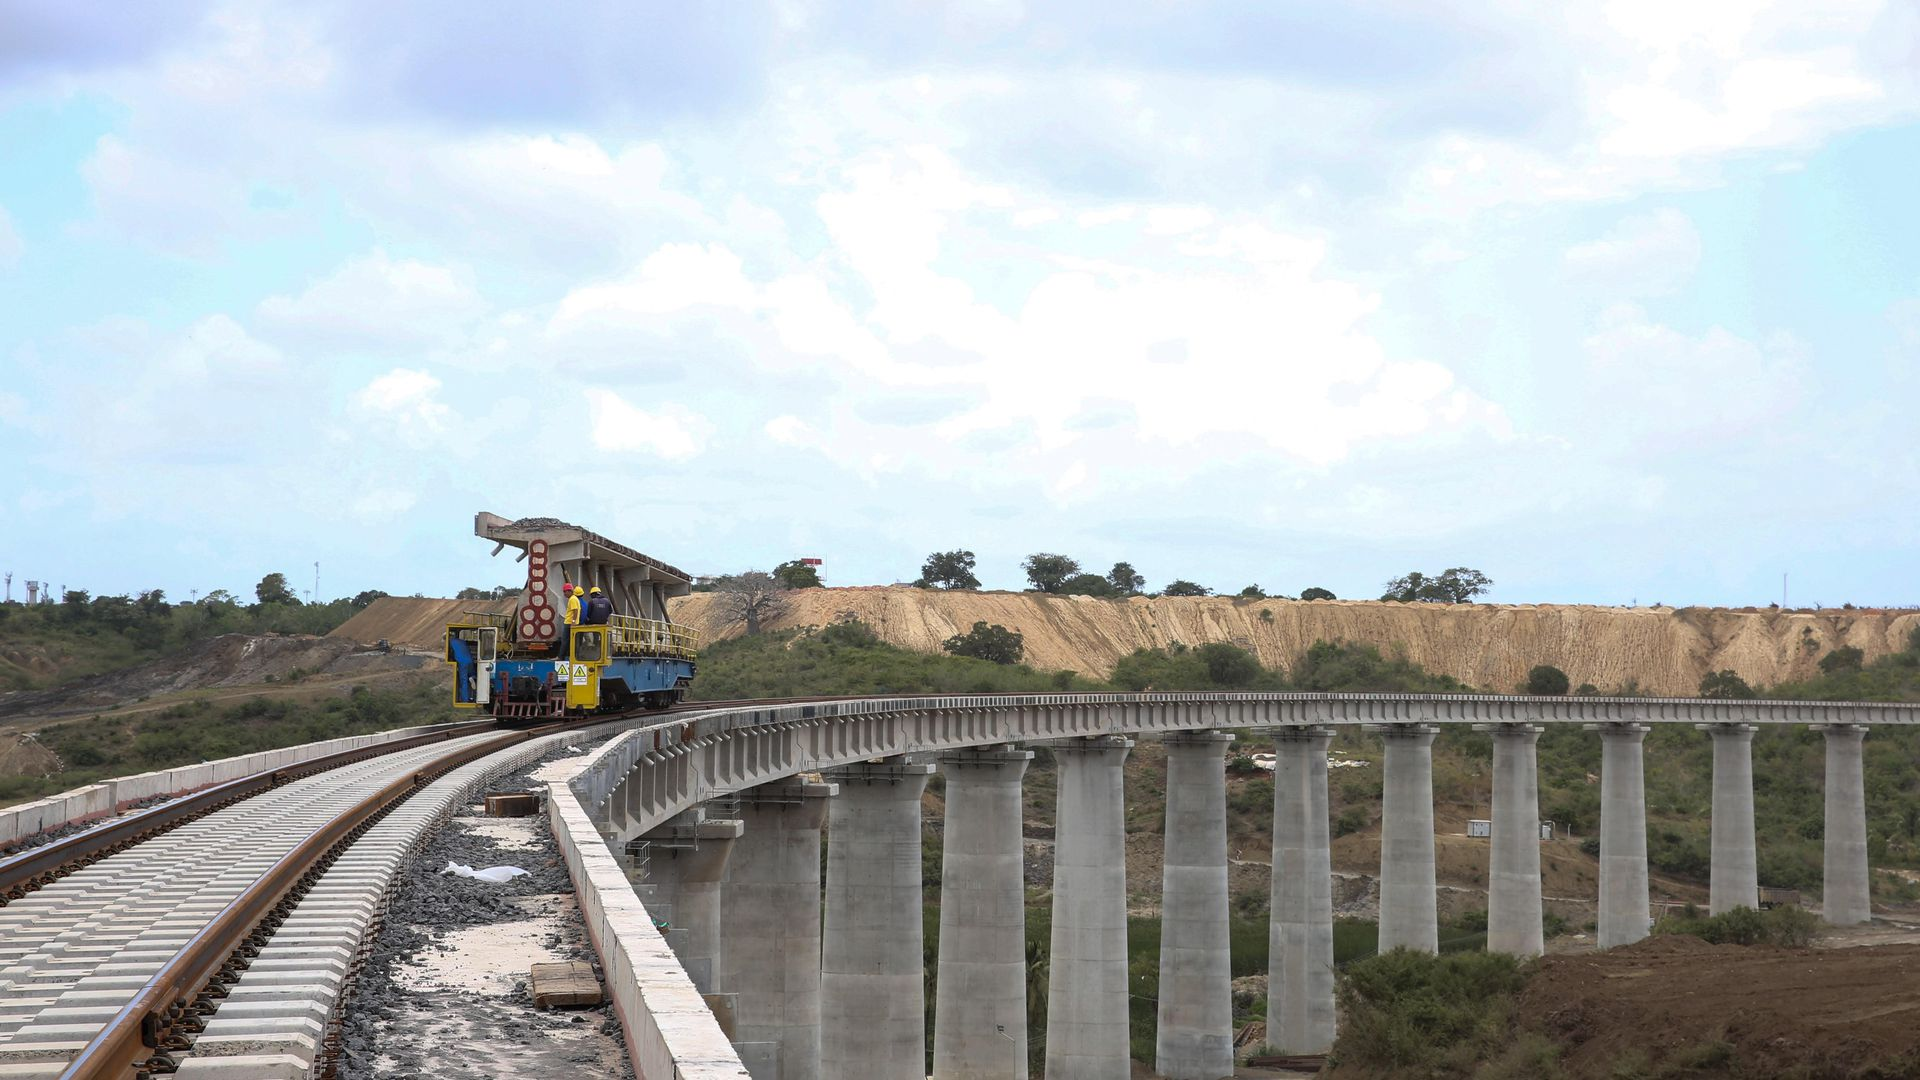 A Kenyan bridge under construction